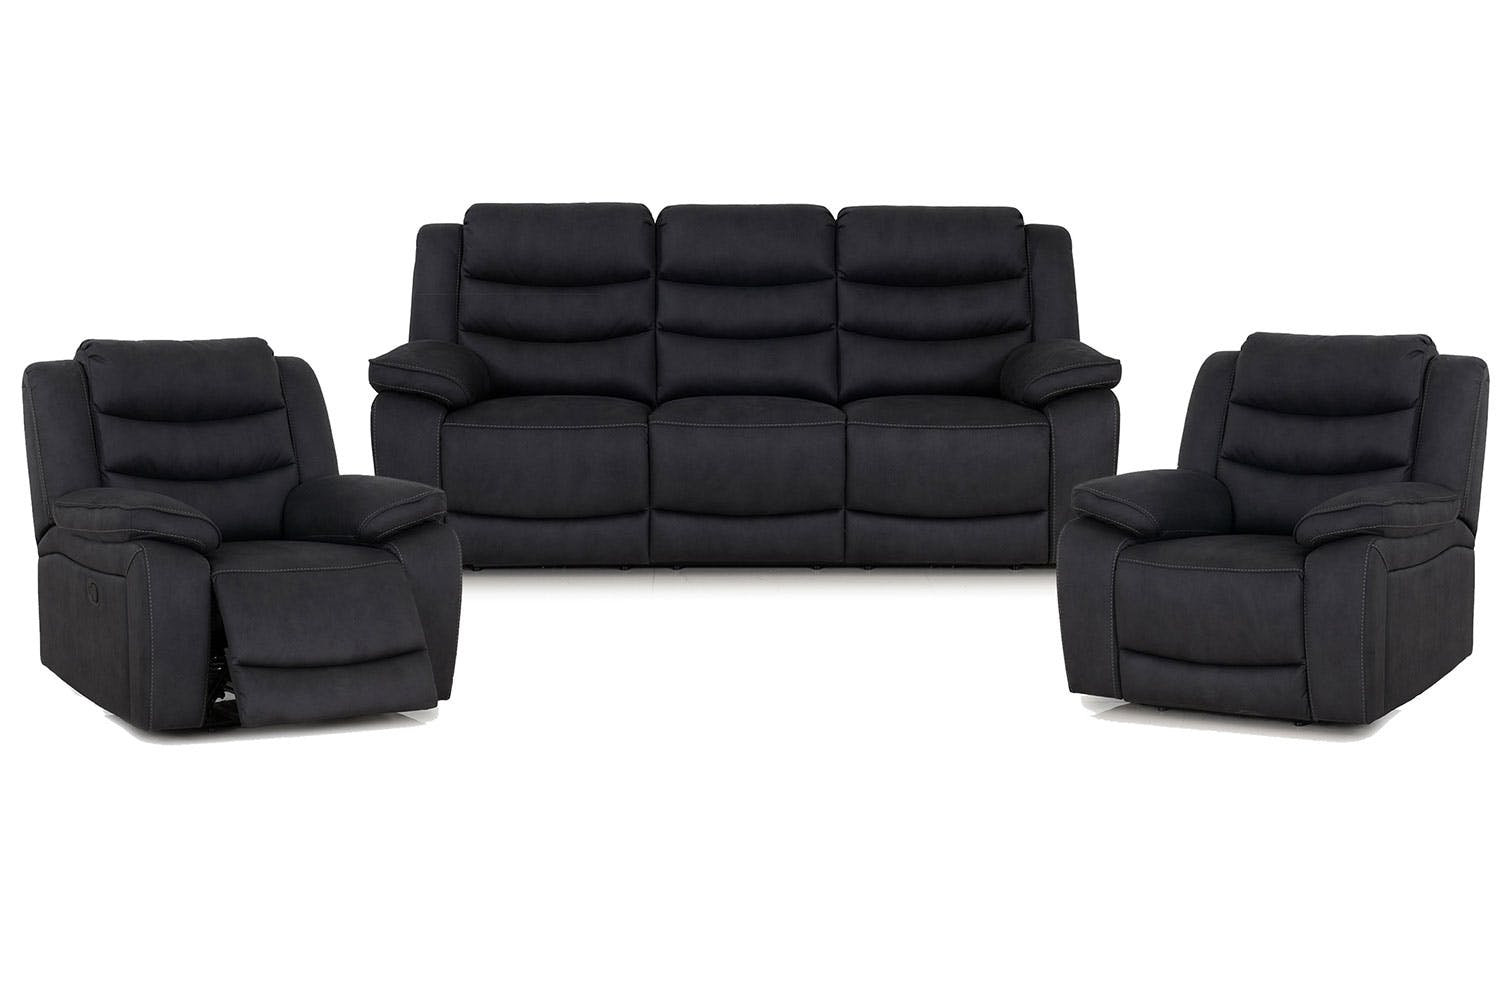 Reclining Chairs And Suites From